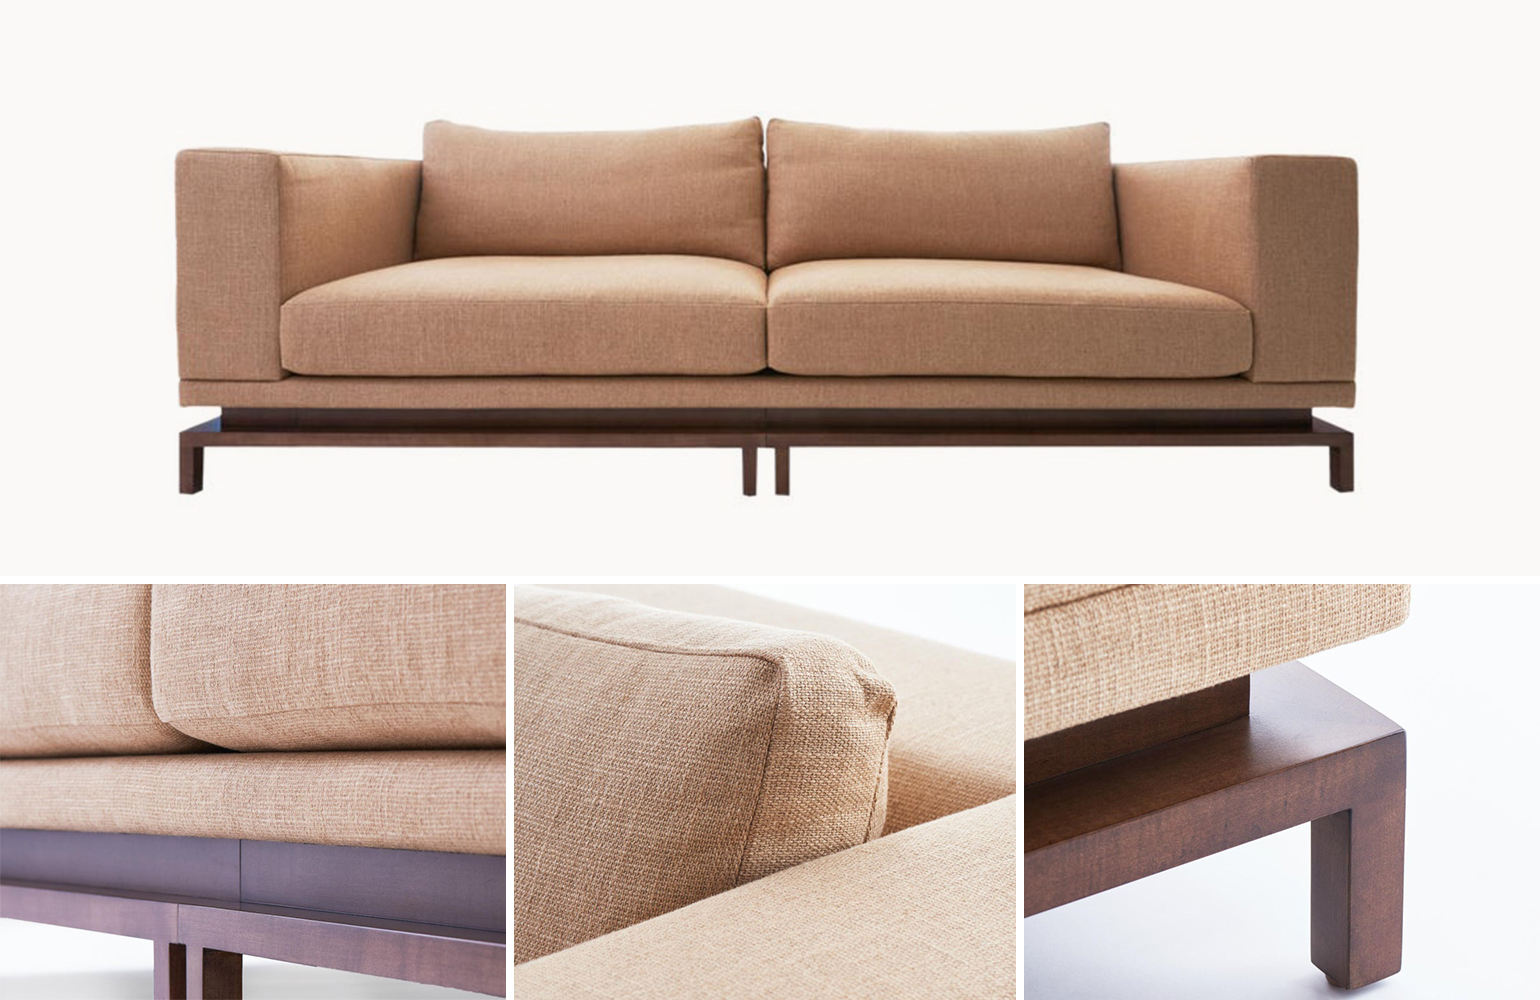 Q: What sort of customization do you offer on the pieces you develop?  A: Every item we have created exists with the understanding that it needs to work within varied interpretations of environment and aesthetic. We have the ability to offer multiple sizes, finishes and species of wood —with all fabrics and leathers to the customer's own specon our upholstered pieces. On the Luz lighting series, the bronze can be finished in a variety of patinas.   Q: What kinds of products are you looking to create next?  A: We are very excited to be expanding our Luz lighting series, as well as adding a lounge chair variation to the Flotar seating. We will be adding to the overall collection with a series of coffee tables by Spring 2020, and are in the preliminary developmental stages of a namesake fabric collection.  To browse Studio 6F's full offering and to learn more about their design services, click here.